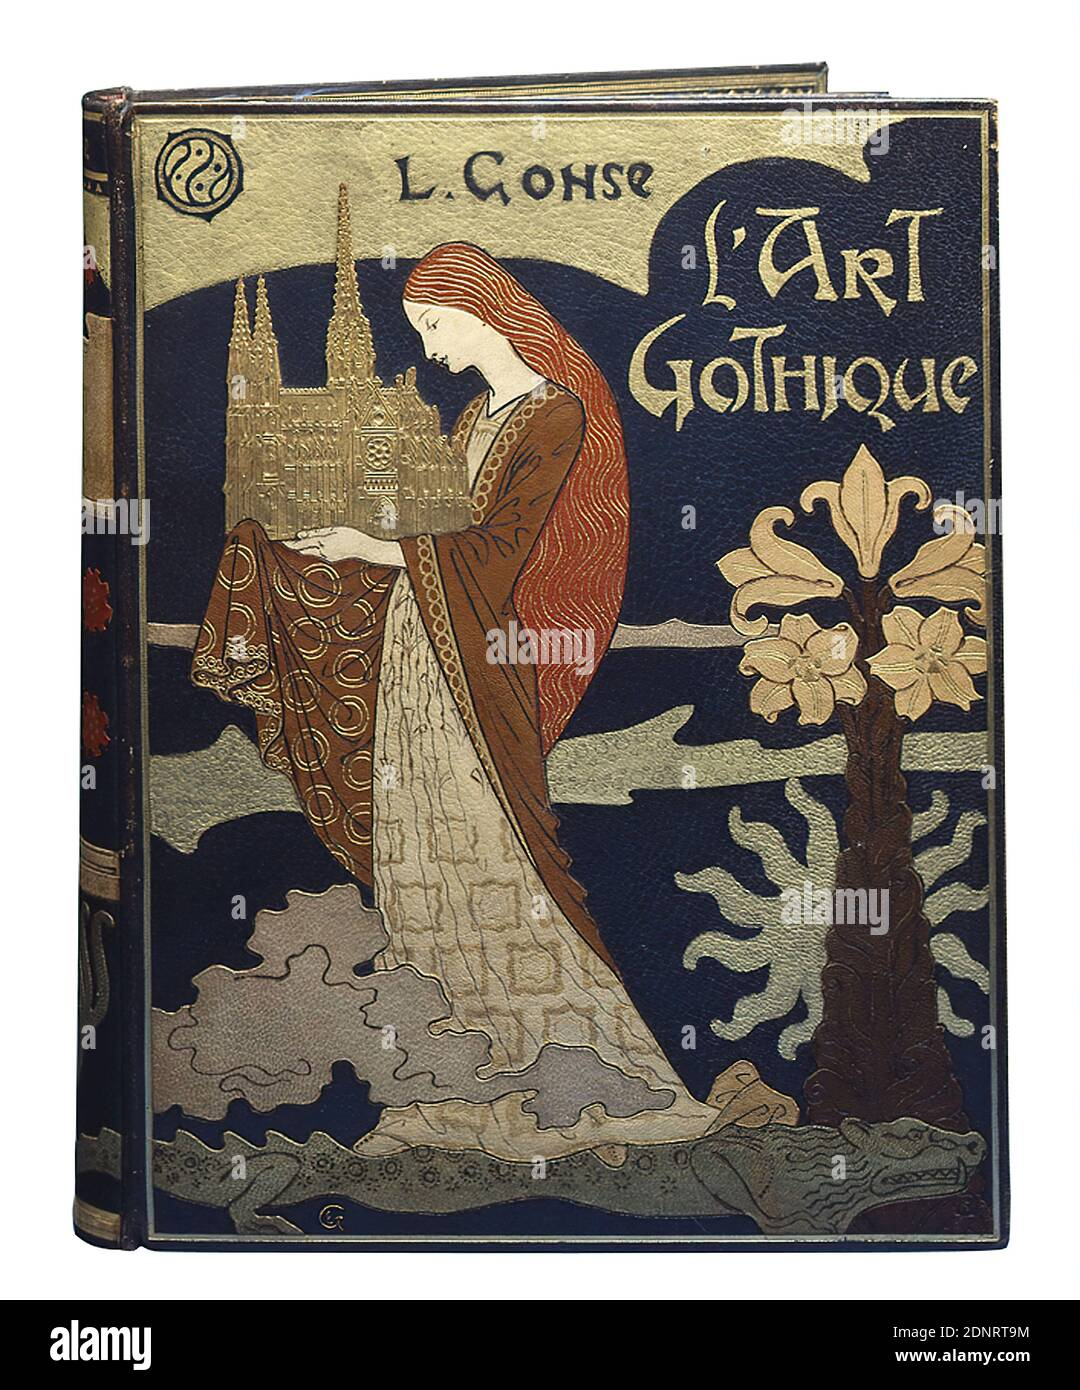 René Wiener, Eugène Grasset, L'Art Gothique by Louis Gonse, Acquired at the world exhibition in Paris 1900 by René Wiener, leather, inlaid, total (book cover): height: 40 cm; width: 32 cm, stamp: lower right R W, [diamond-shaped, golden monogram], book decoration, arts and crafts, woman, exterior of a church, plant, animal, architectural model, lily, mythical creature, monster, legendary figures, art nouveau, From the versatile Eugène Grasset comes the design drawing for this unique book cover. Grasset was Swiss, was later naturalized in France and taught in Paris for many years. Stock Photo